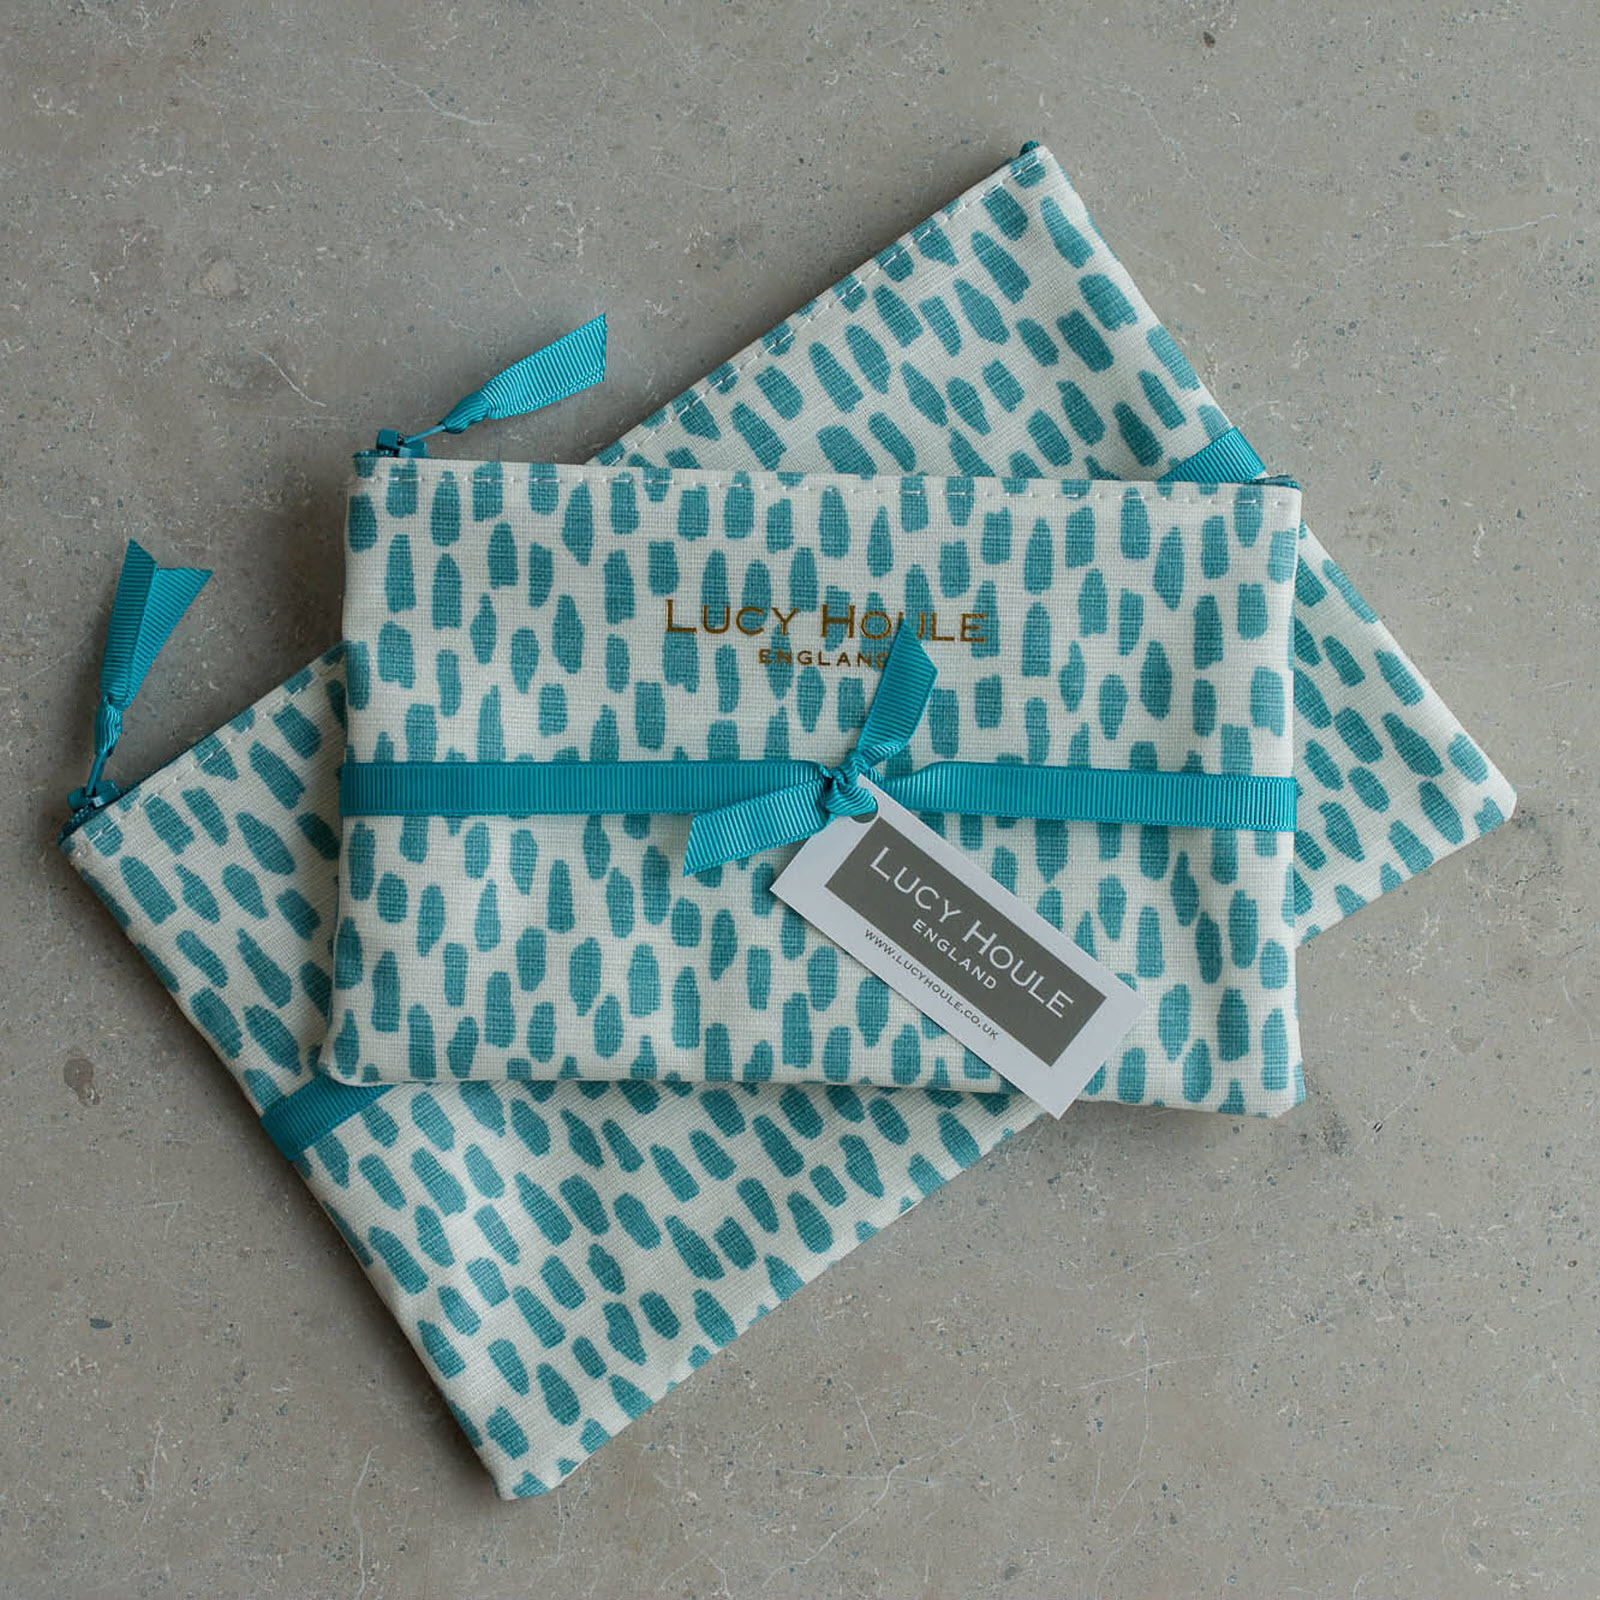 Aqua Cobblestone Make-Up Bag with Aqua Zip